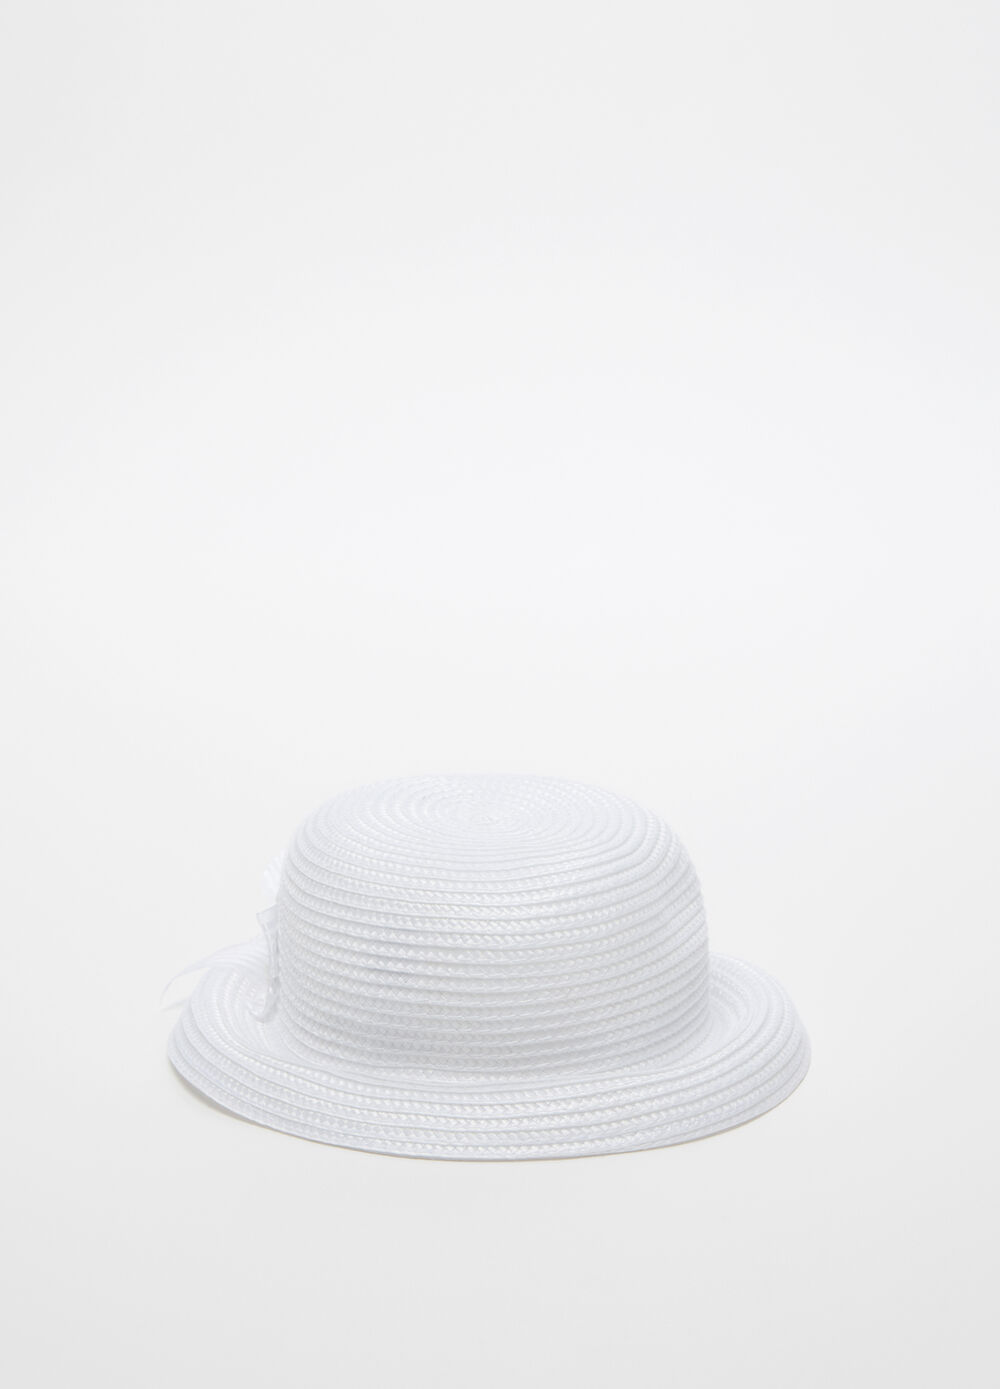 Bucket hat with striped weave